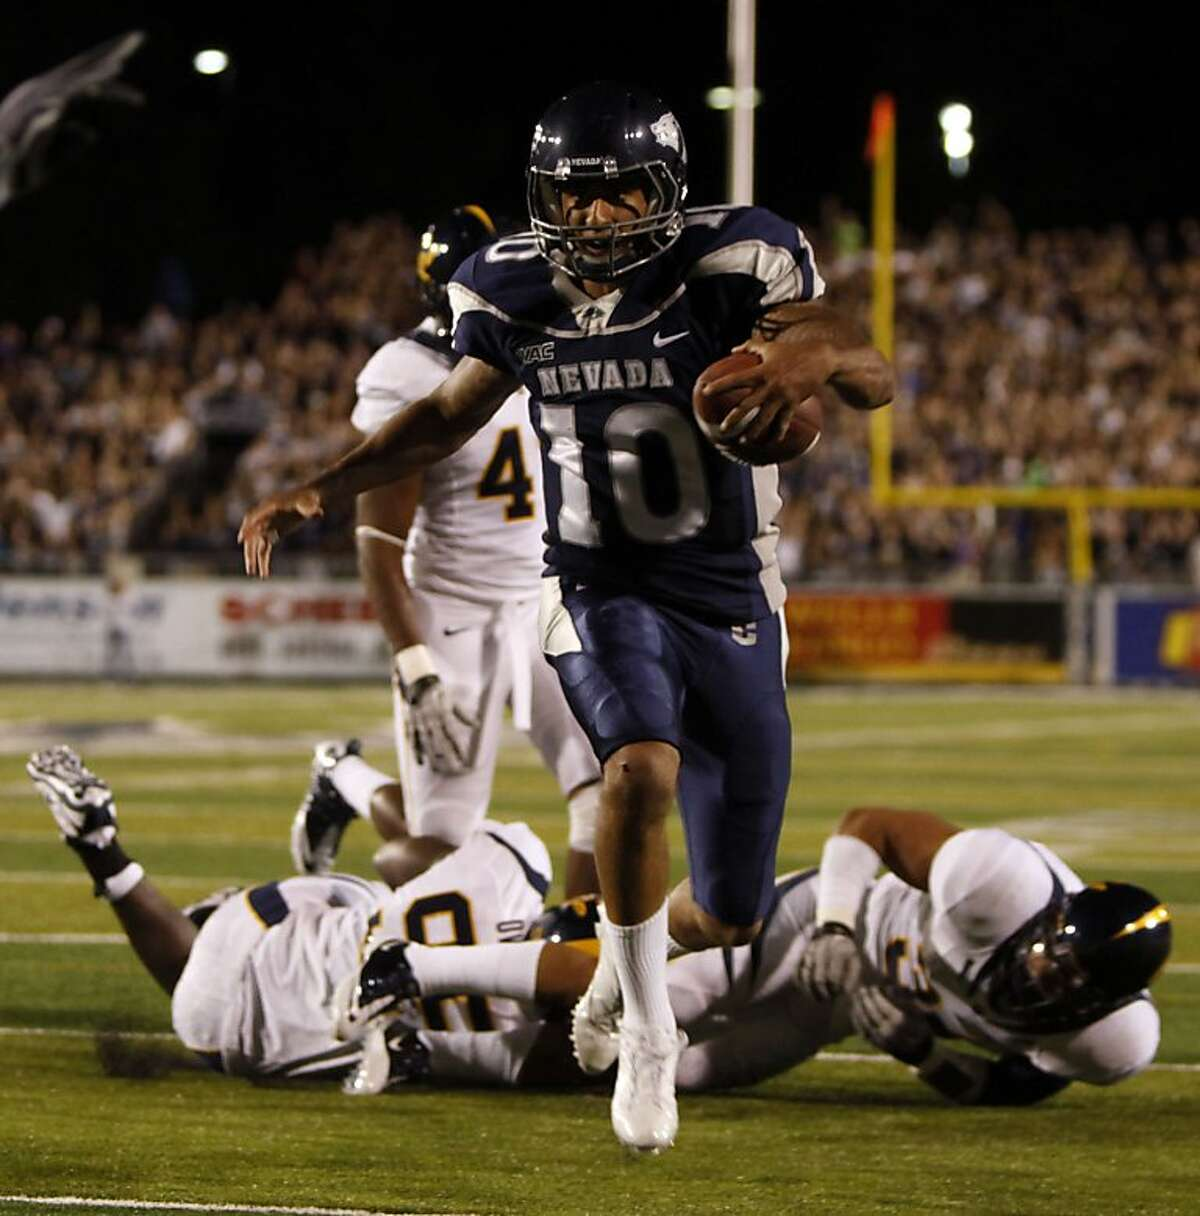 Nevada's Colin Kaepernick runs into the end zone for his second touchdown in the first half of their NCAA college football game Friday, Sept. 17, 2010,against California in Reno, Nevada. Nevada leads at the half 24-14